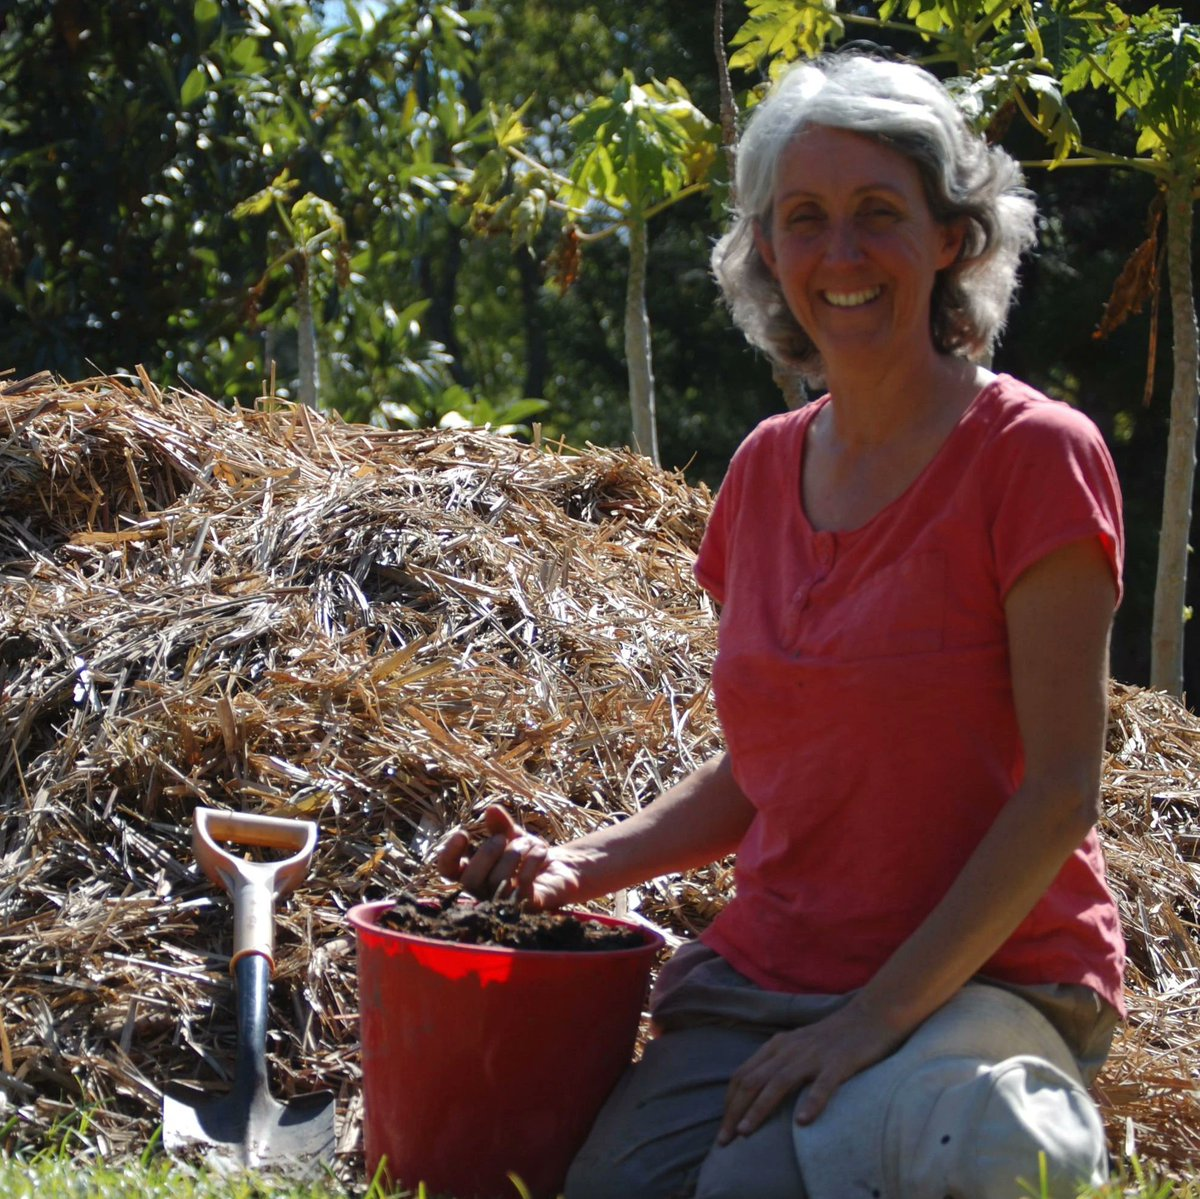 Looking for something to brighten up your Friday afternoon? Try this inspiring article from The Herbal Gardener - https://theherbalgardener.com.au/blogs/news/why-i-grow-biodynamic…  Now is the perfect time to start your own #biodynamic #garden at home - https://www.biodynamic.org.uk/garden/#bd-garden-club…pic.twitter.com/B1vvgeO3pp